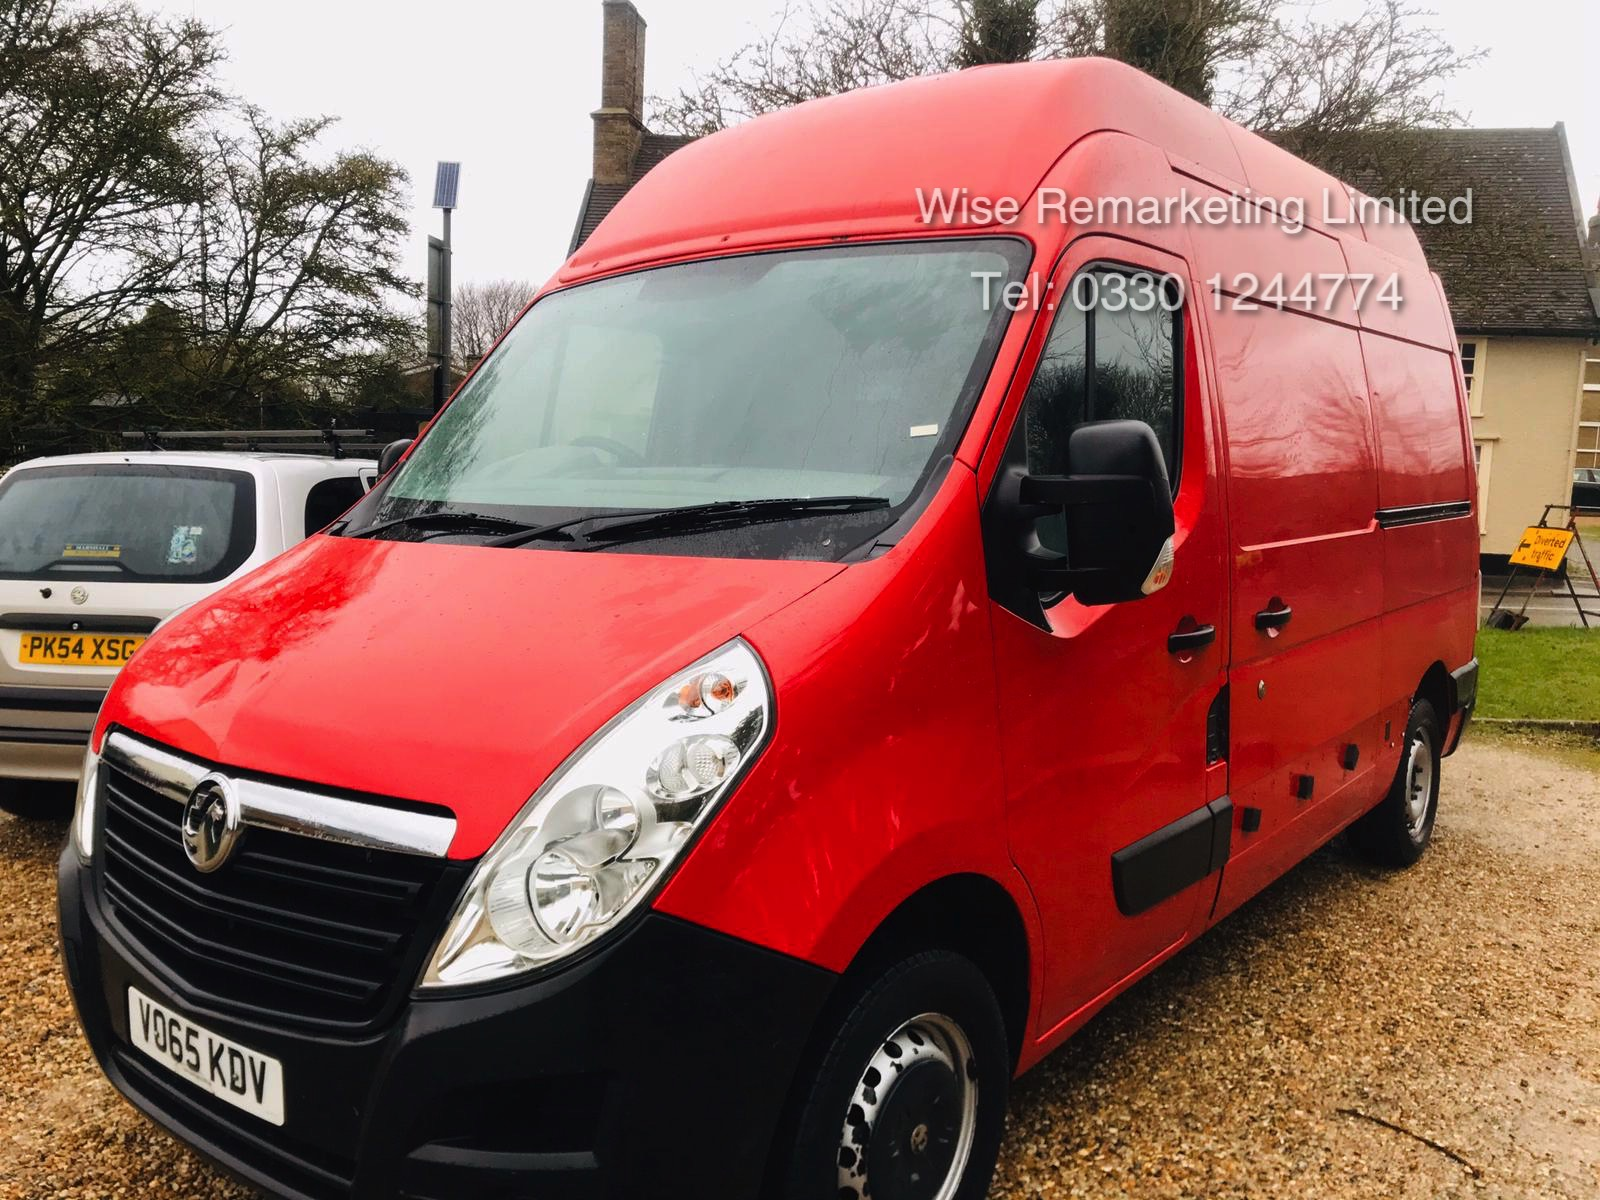 Vauxhall Movano 35 2.3 CDTi BiTurbo EcoFlex **HIGH ROOF** 2016 Model - AIr con - 1 Owner - RARE - Image 2 of 21